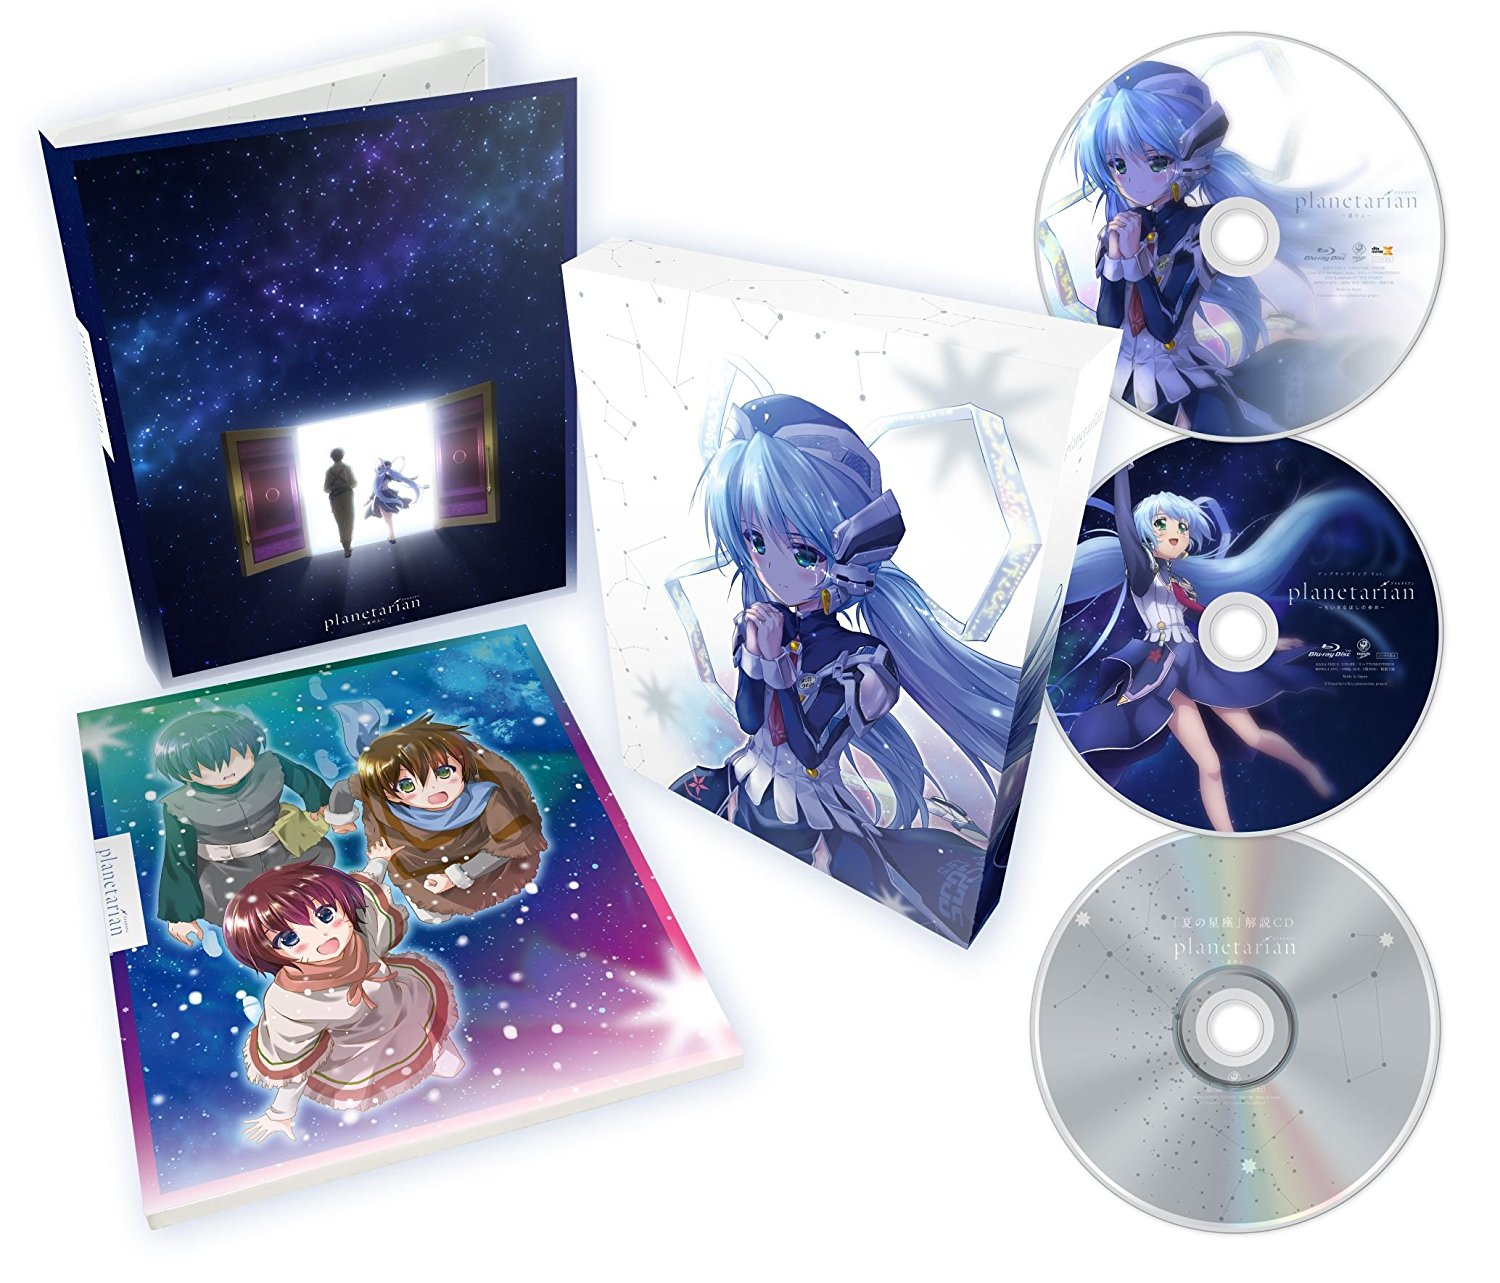 planetarian ~Hoshi no Hito~ Film Now Out on Blu-ray, with an Exhibition to Back It